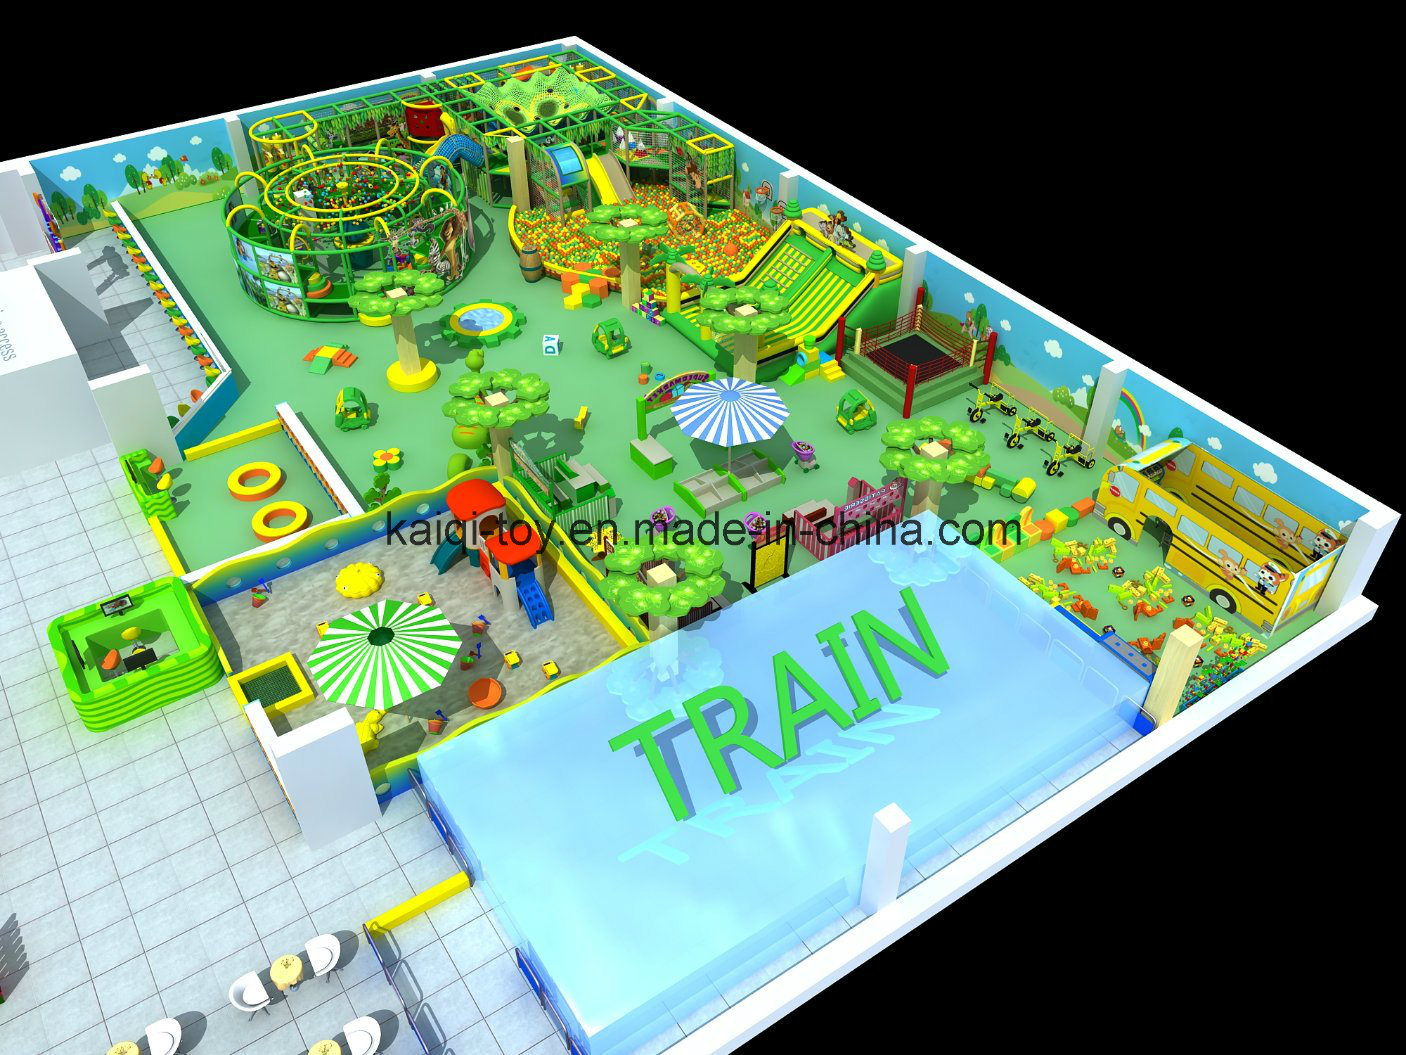 Indoor Playground for Kids Suitable for Shopping Mall